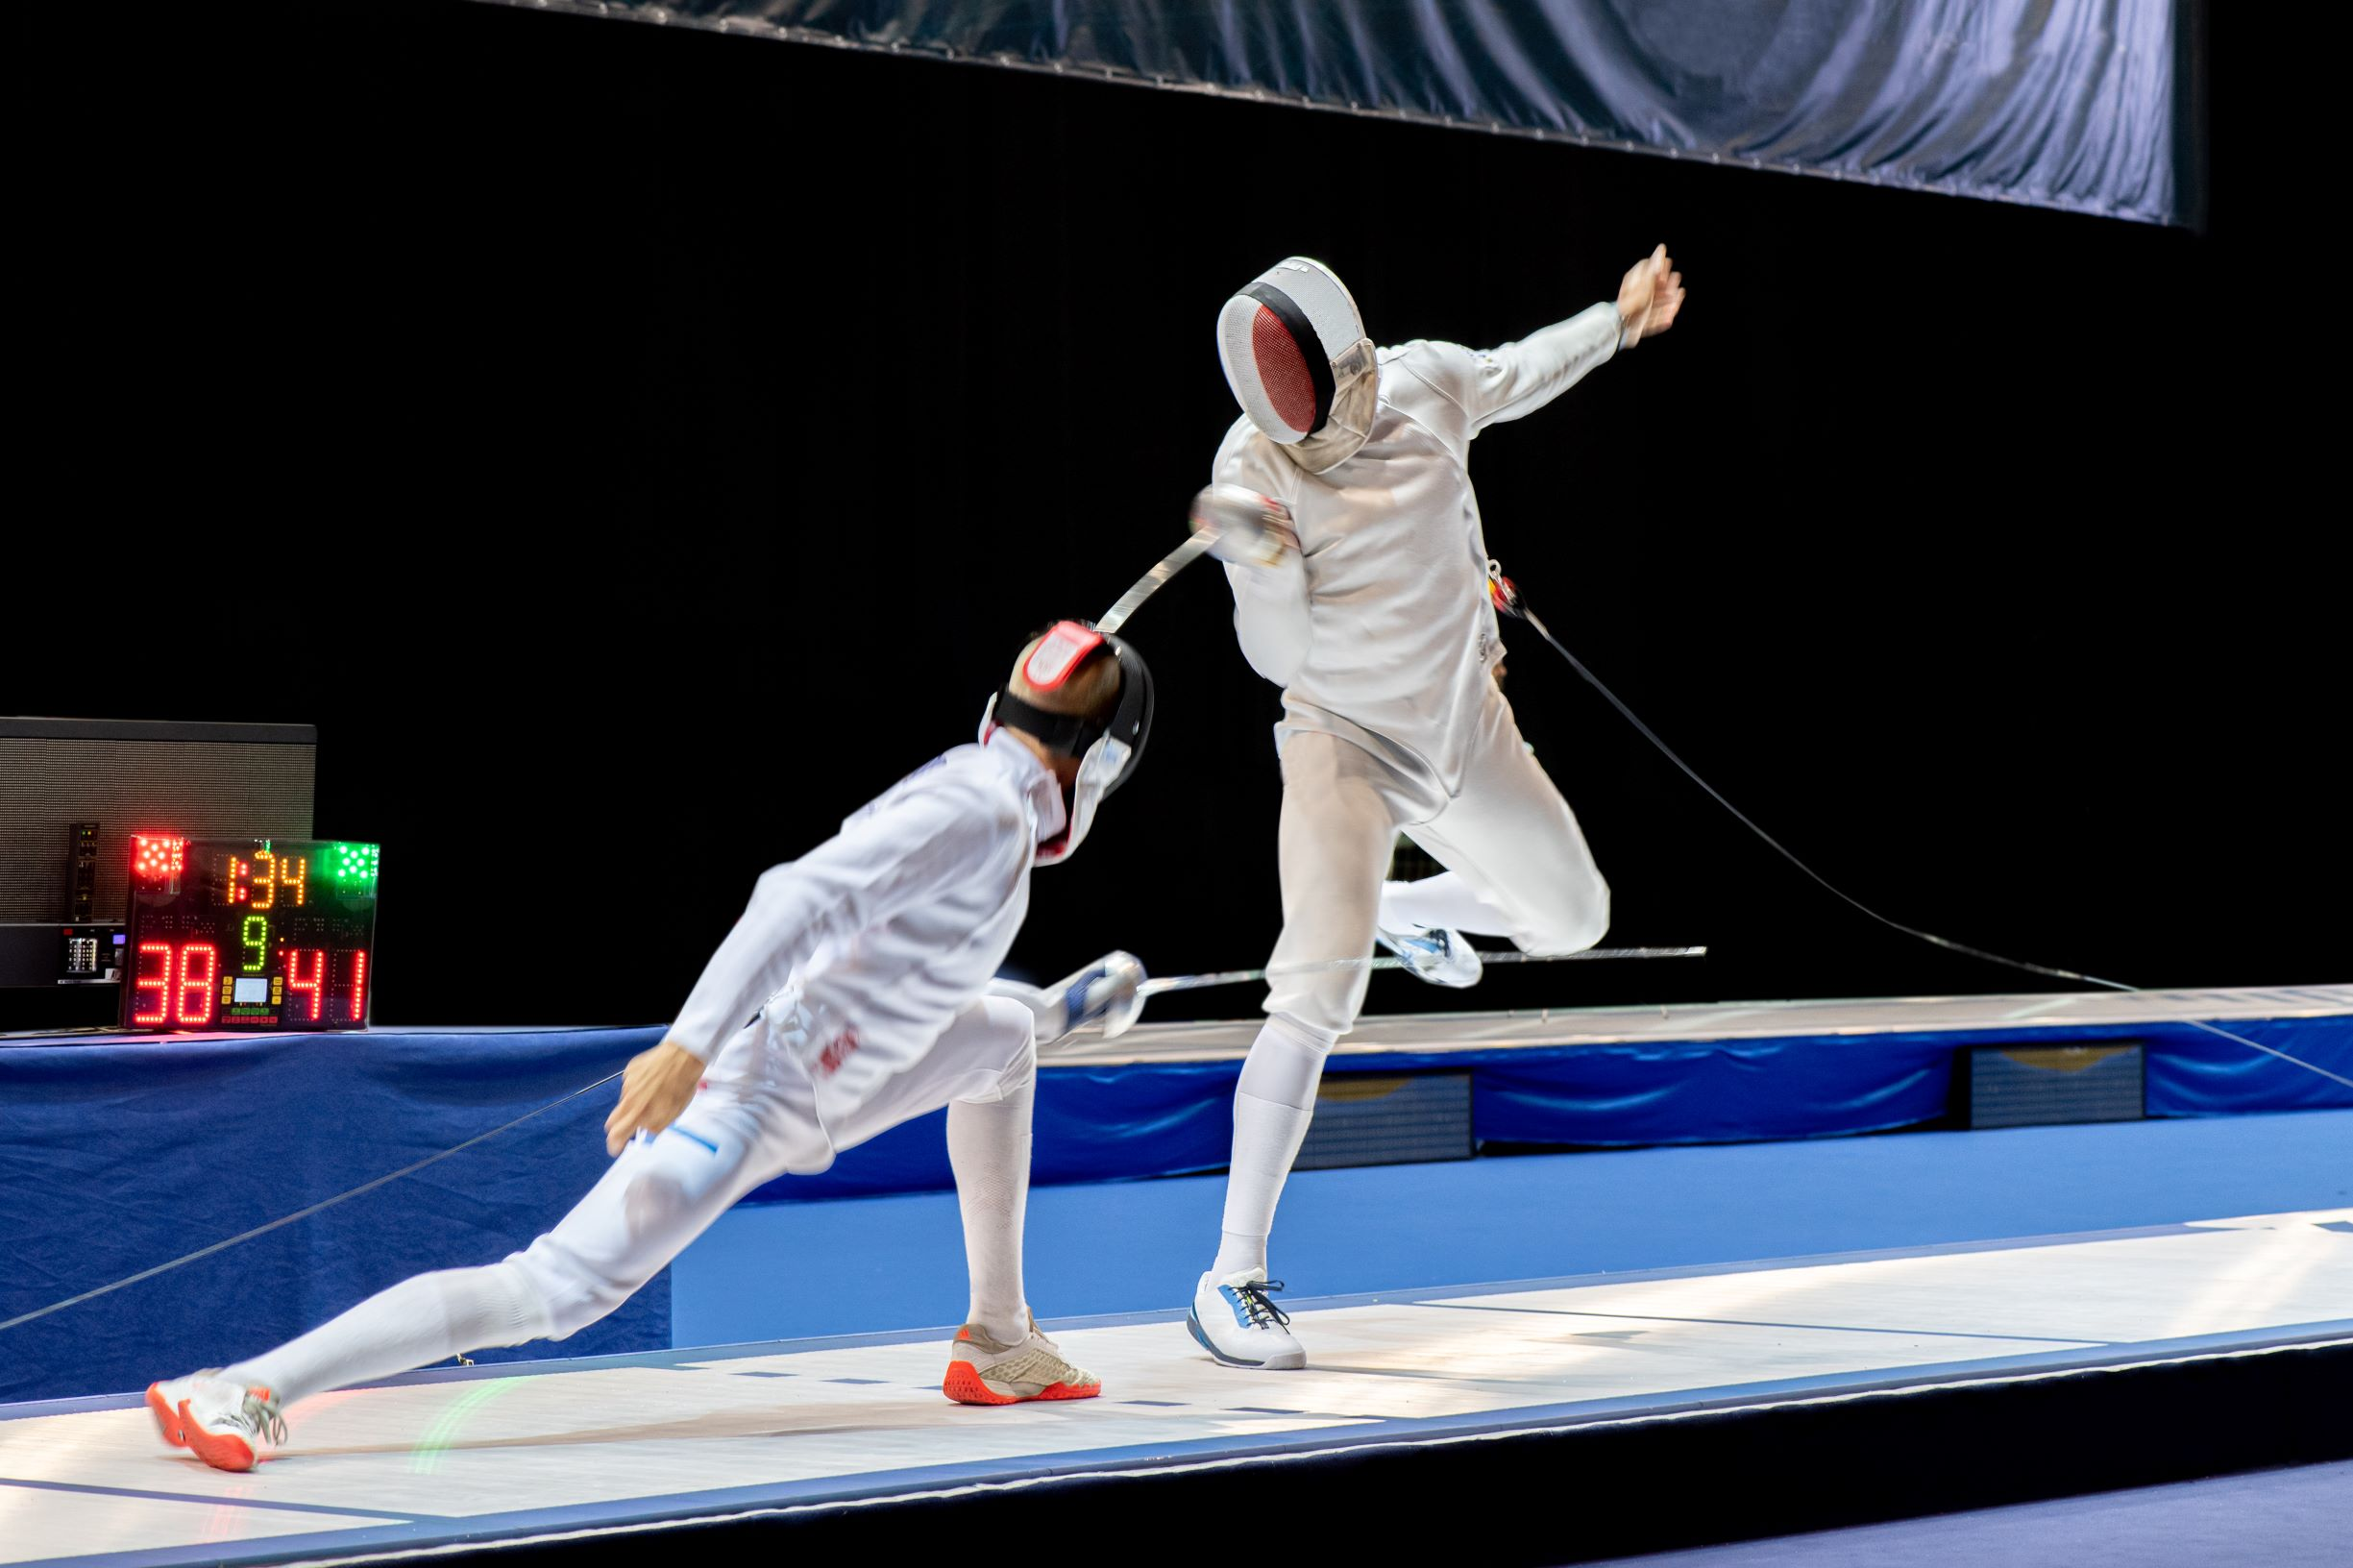 Licensed FILE #: 297263442 Preview Crop Find Similar Fight at a fencing competition.